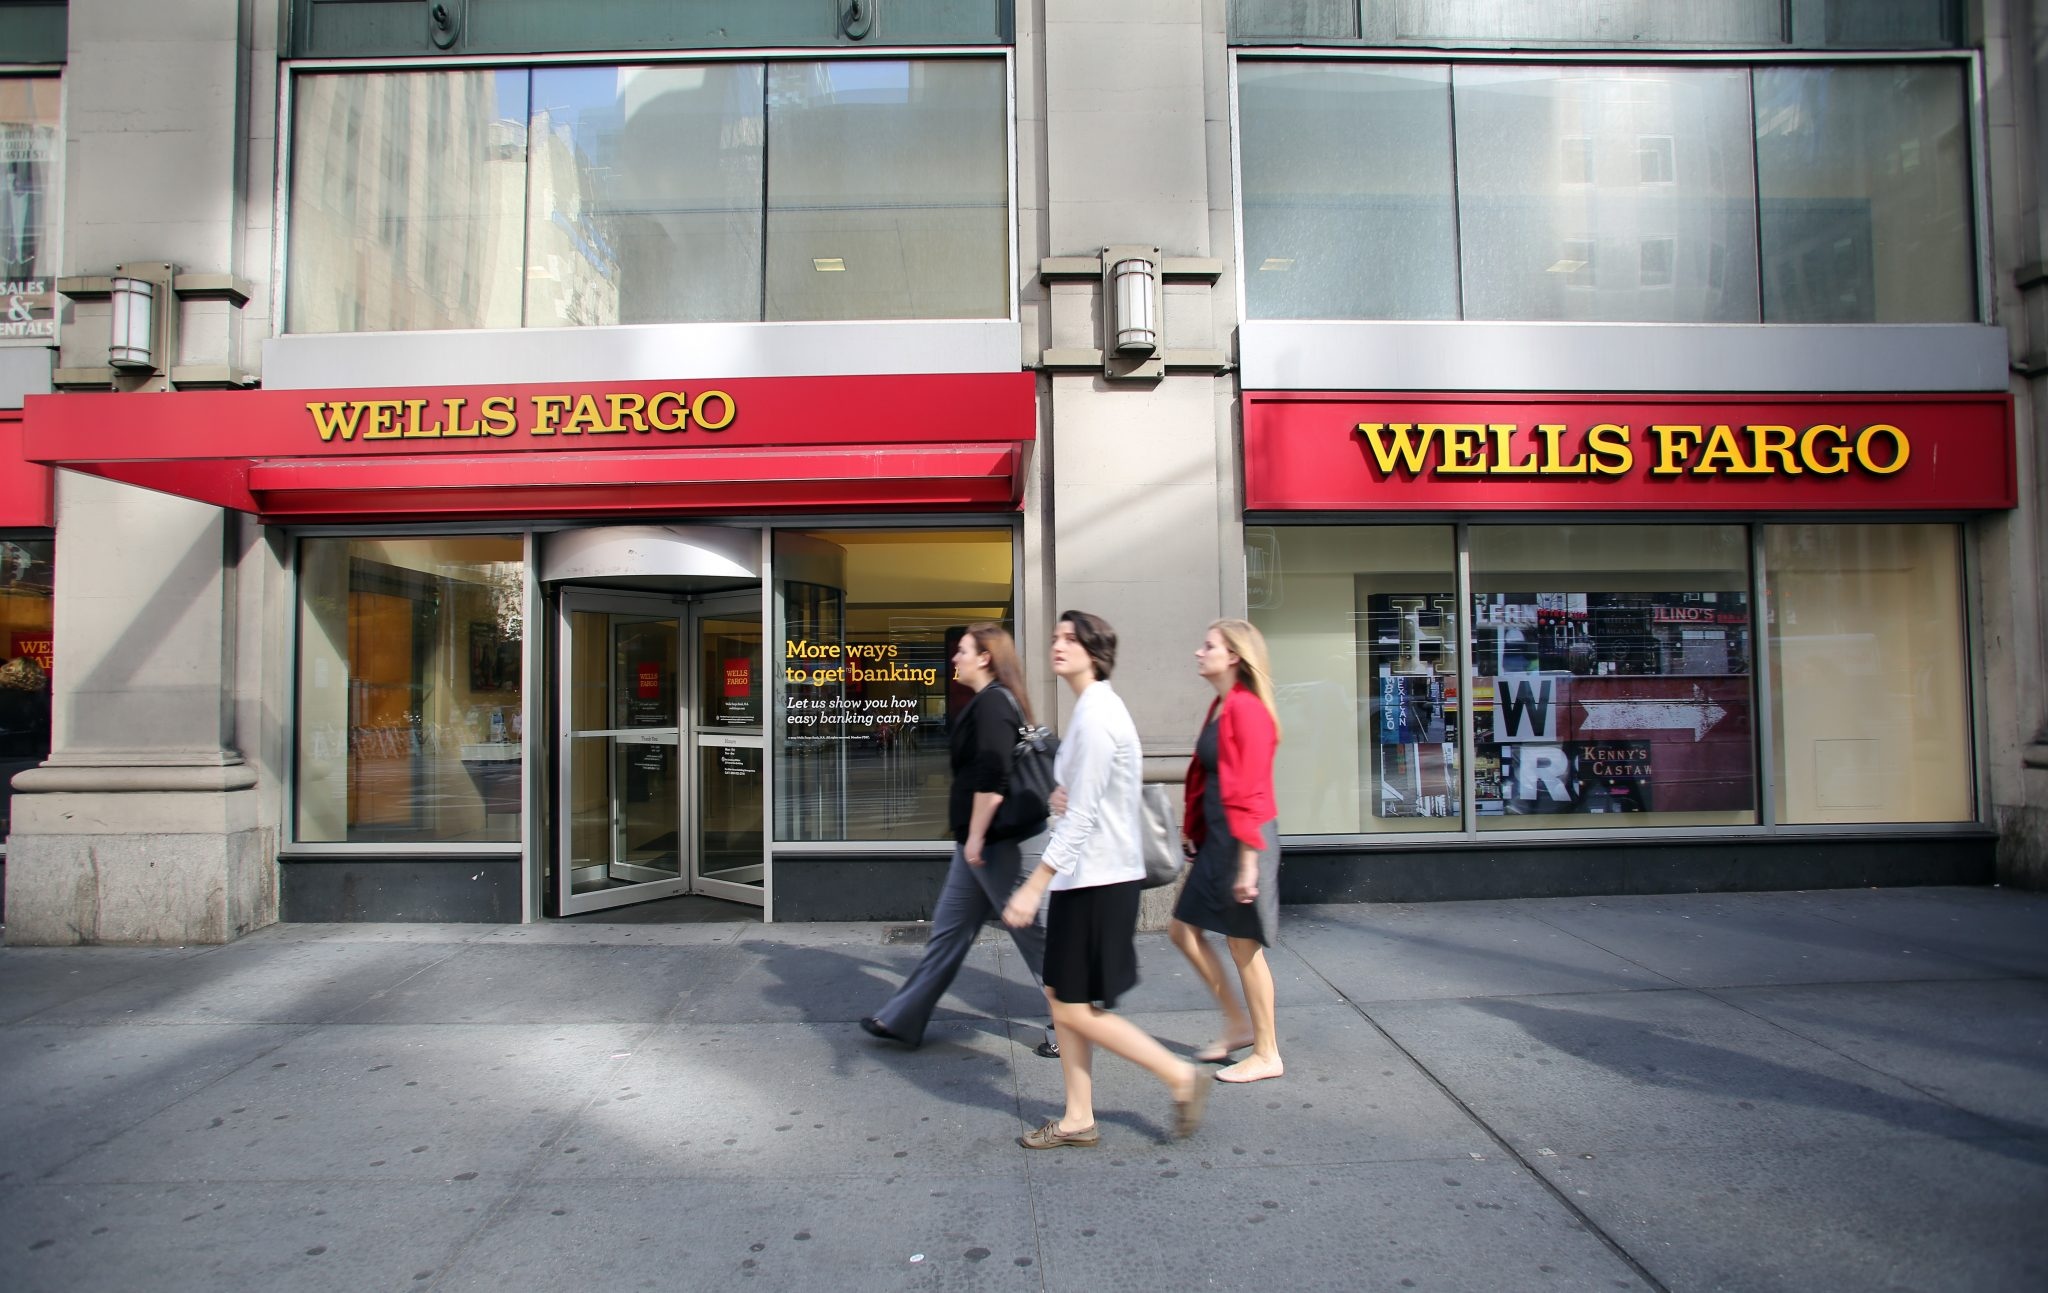 Wells Fargo Free Credit Score Promotion Not a Big Deal When There Are Free Alternatives